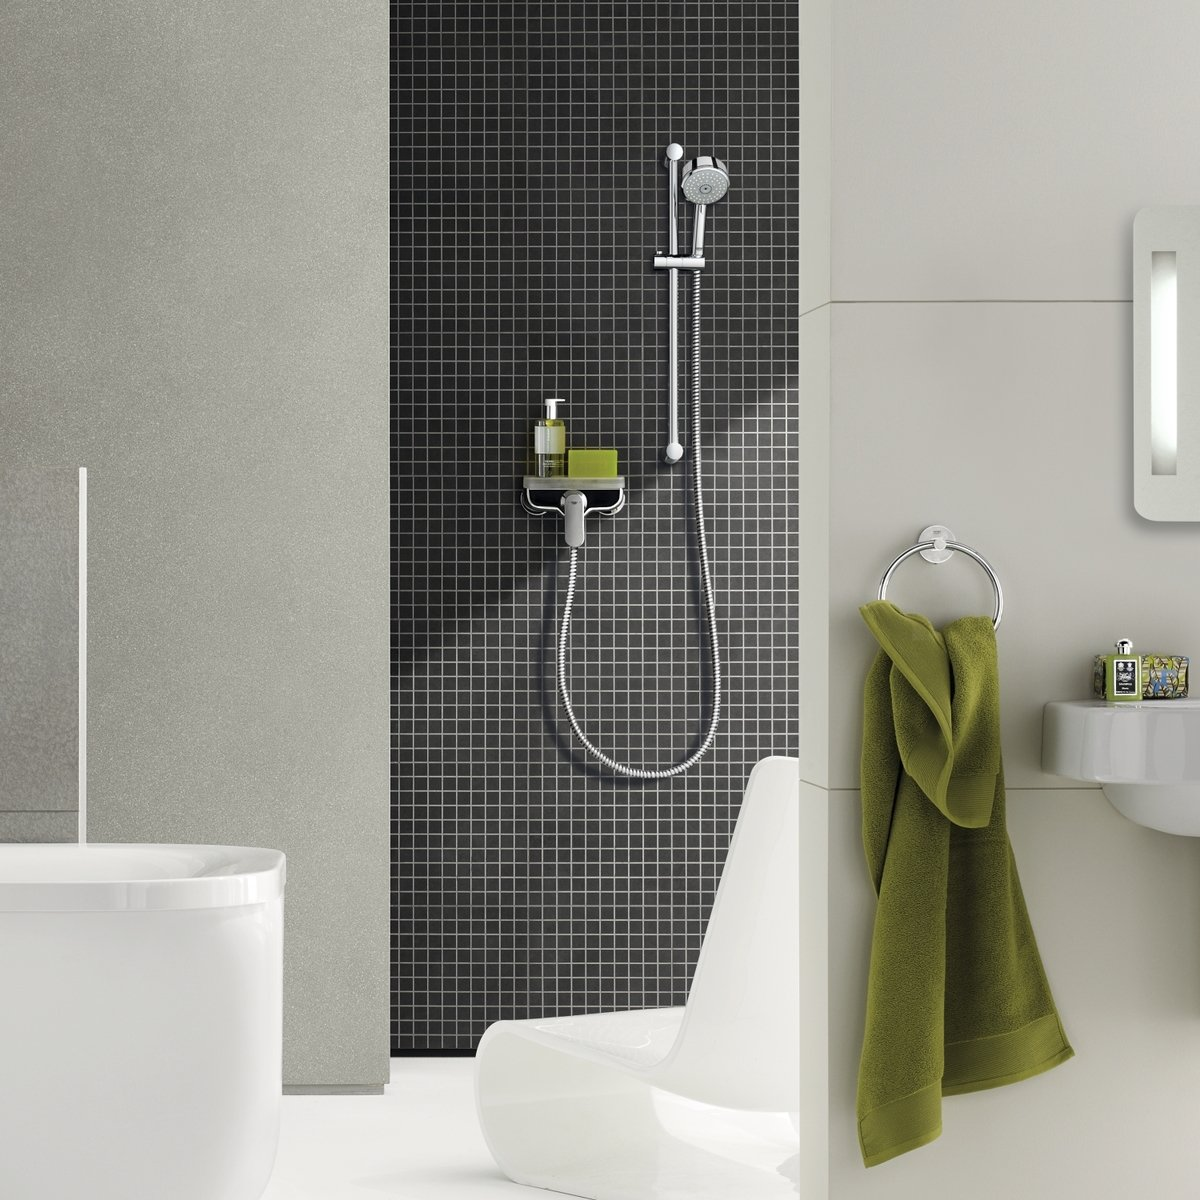 grohe eurosmart cosmopolitan douchekraan met koppelingen chroom 32837000. Black Bedroom Furniture Sets. Home Design Ideas